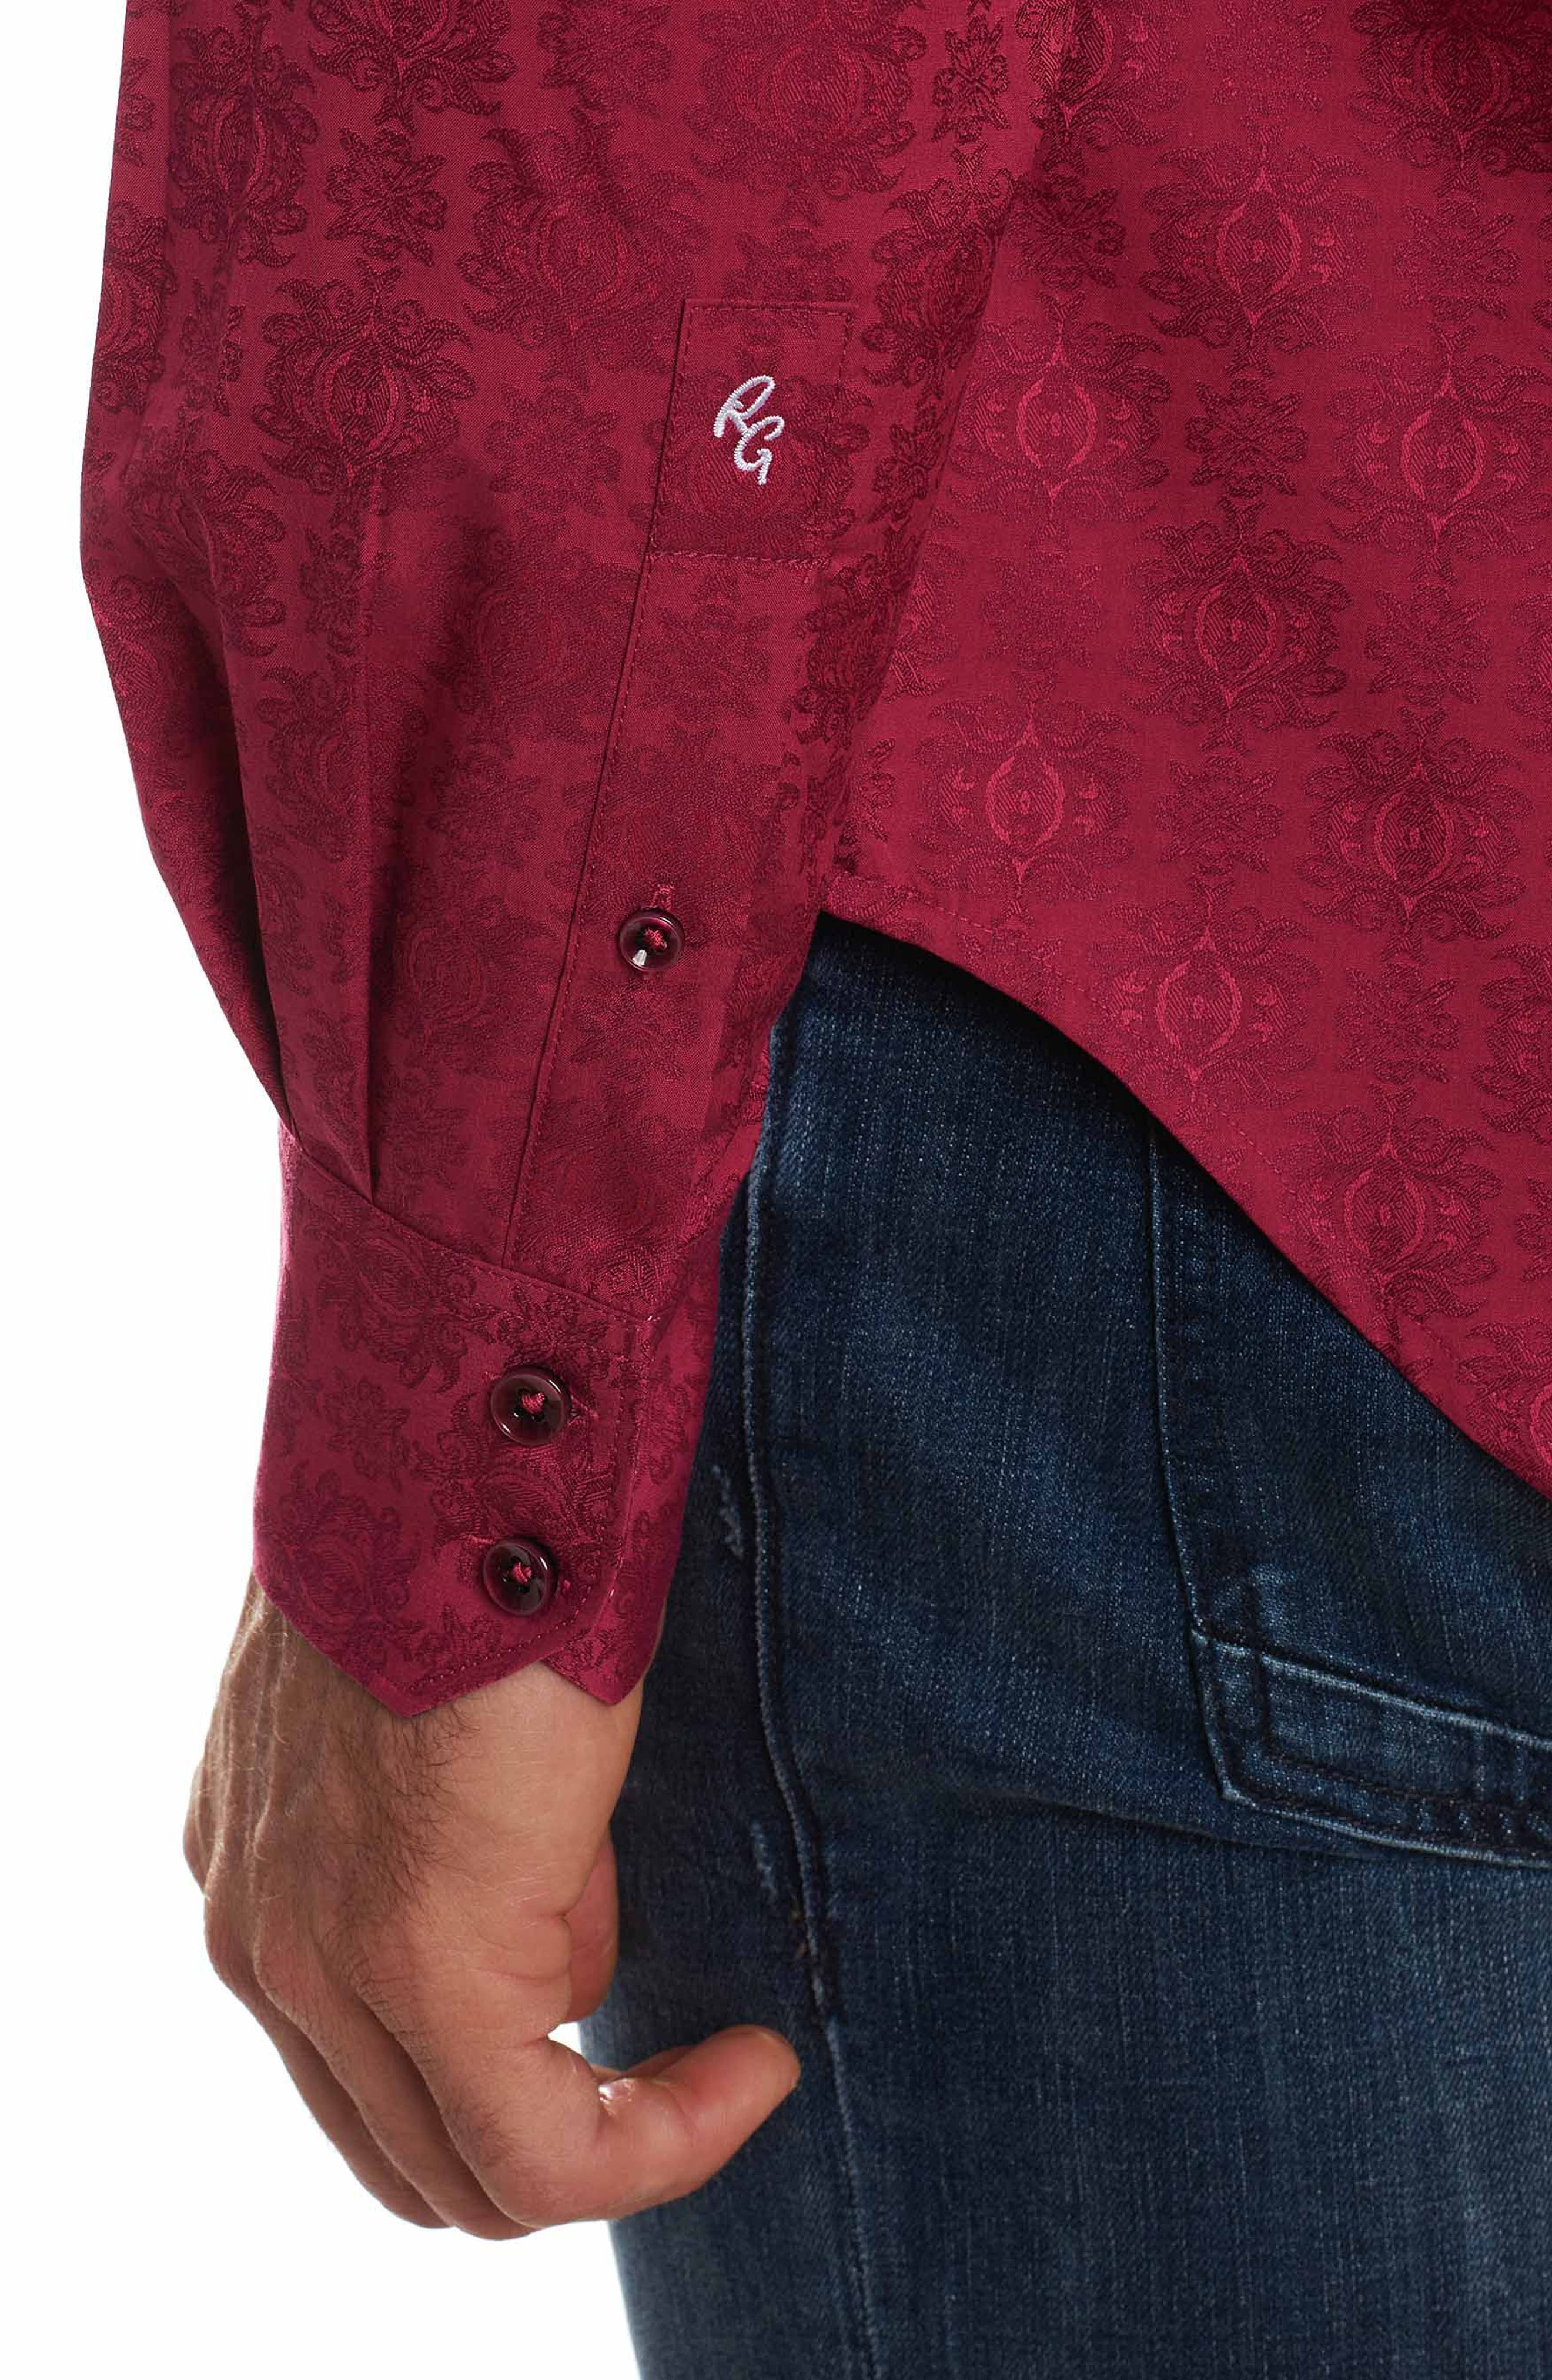 Cullen Classic Fit Jacquard Sport Shirt,                             Alternate thumbnail 8, color,